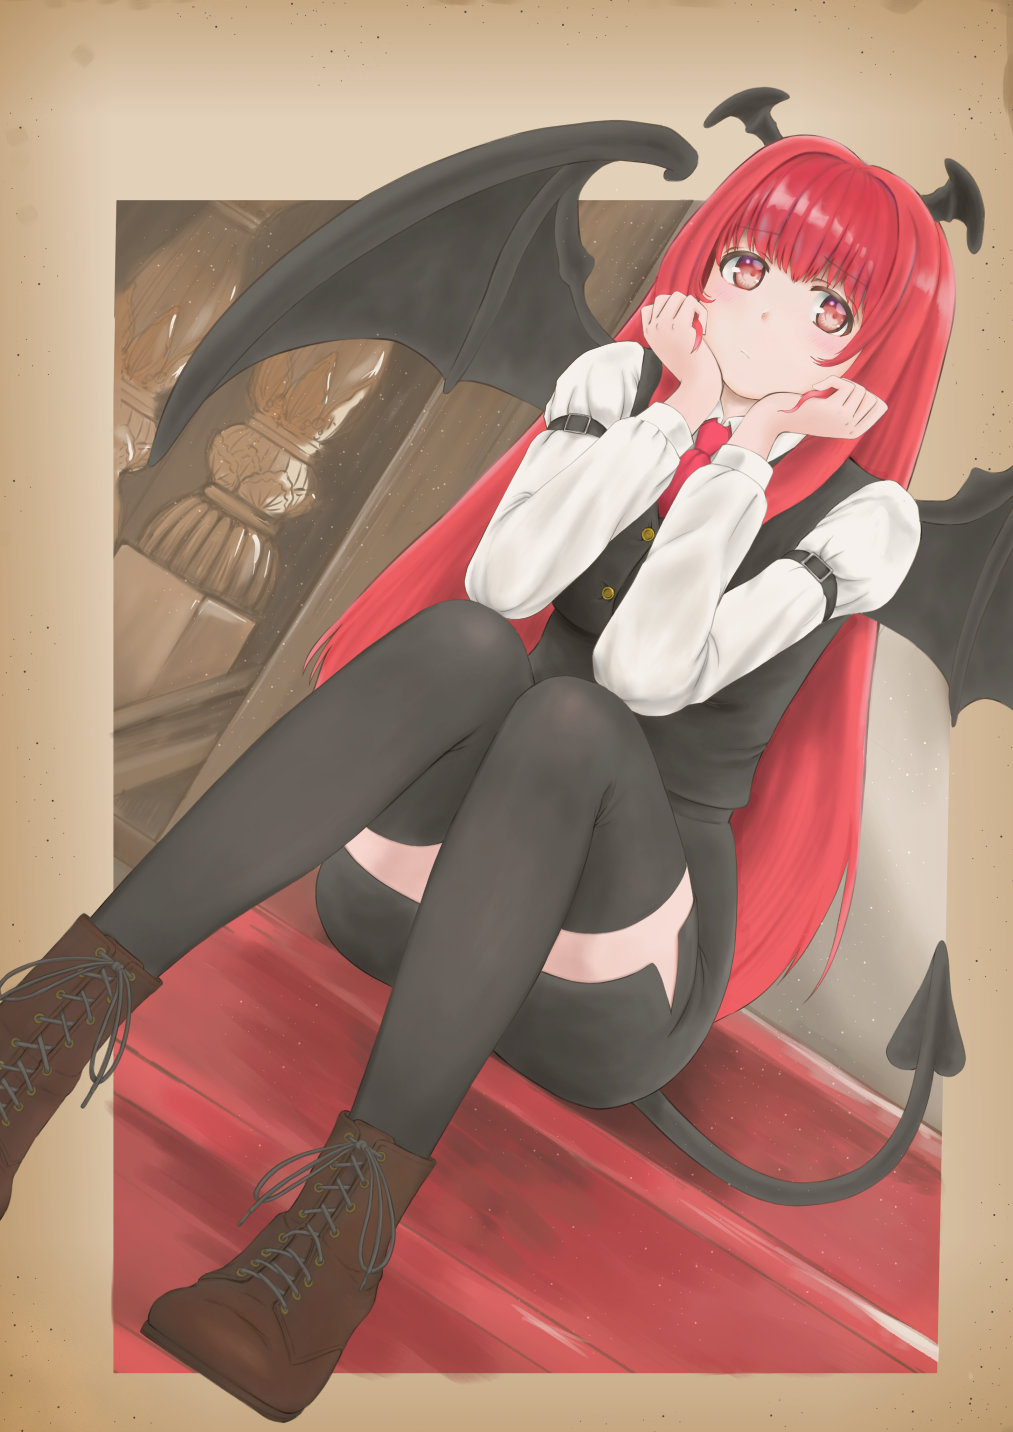 1girl armband black_legwear black_skirt black_vest boots border bosutonii brown_border brown_footwear commentary_request cross-laced_footwear demon_tail demon_wings dutch_angle elbows_on_knees expressionless eyebrows_visible_through_hair head_in_hand head_wings highres koakuma light_particles long_hair long_sleeves looking_at_viewer pencil_skirt red_eyes redhead shirt sitting skirt solo stairs tail thigh-highs touhou very_long_hair vest waistcoat white_shirt wings